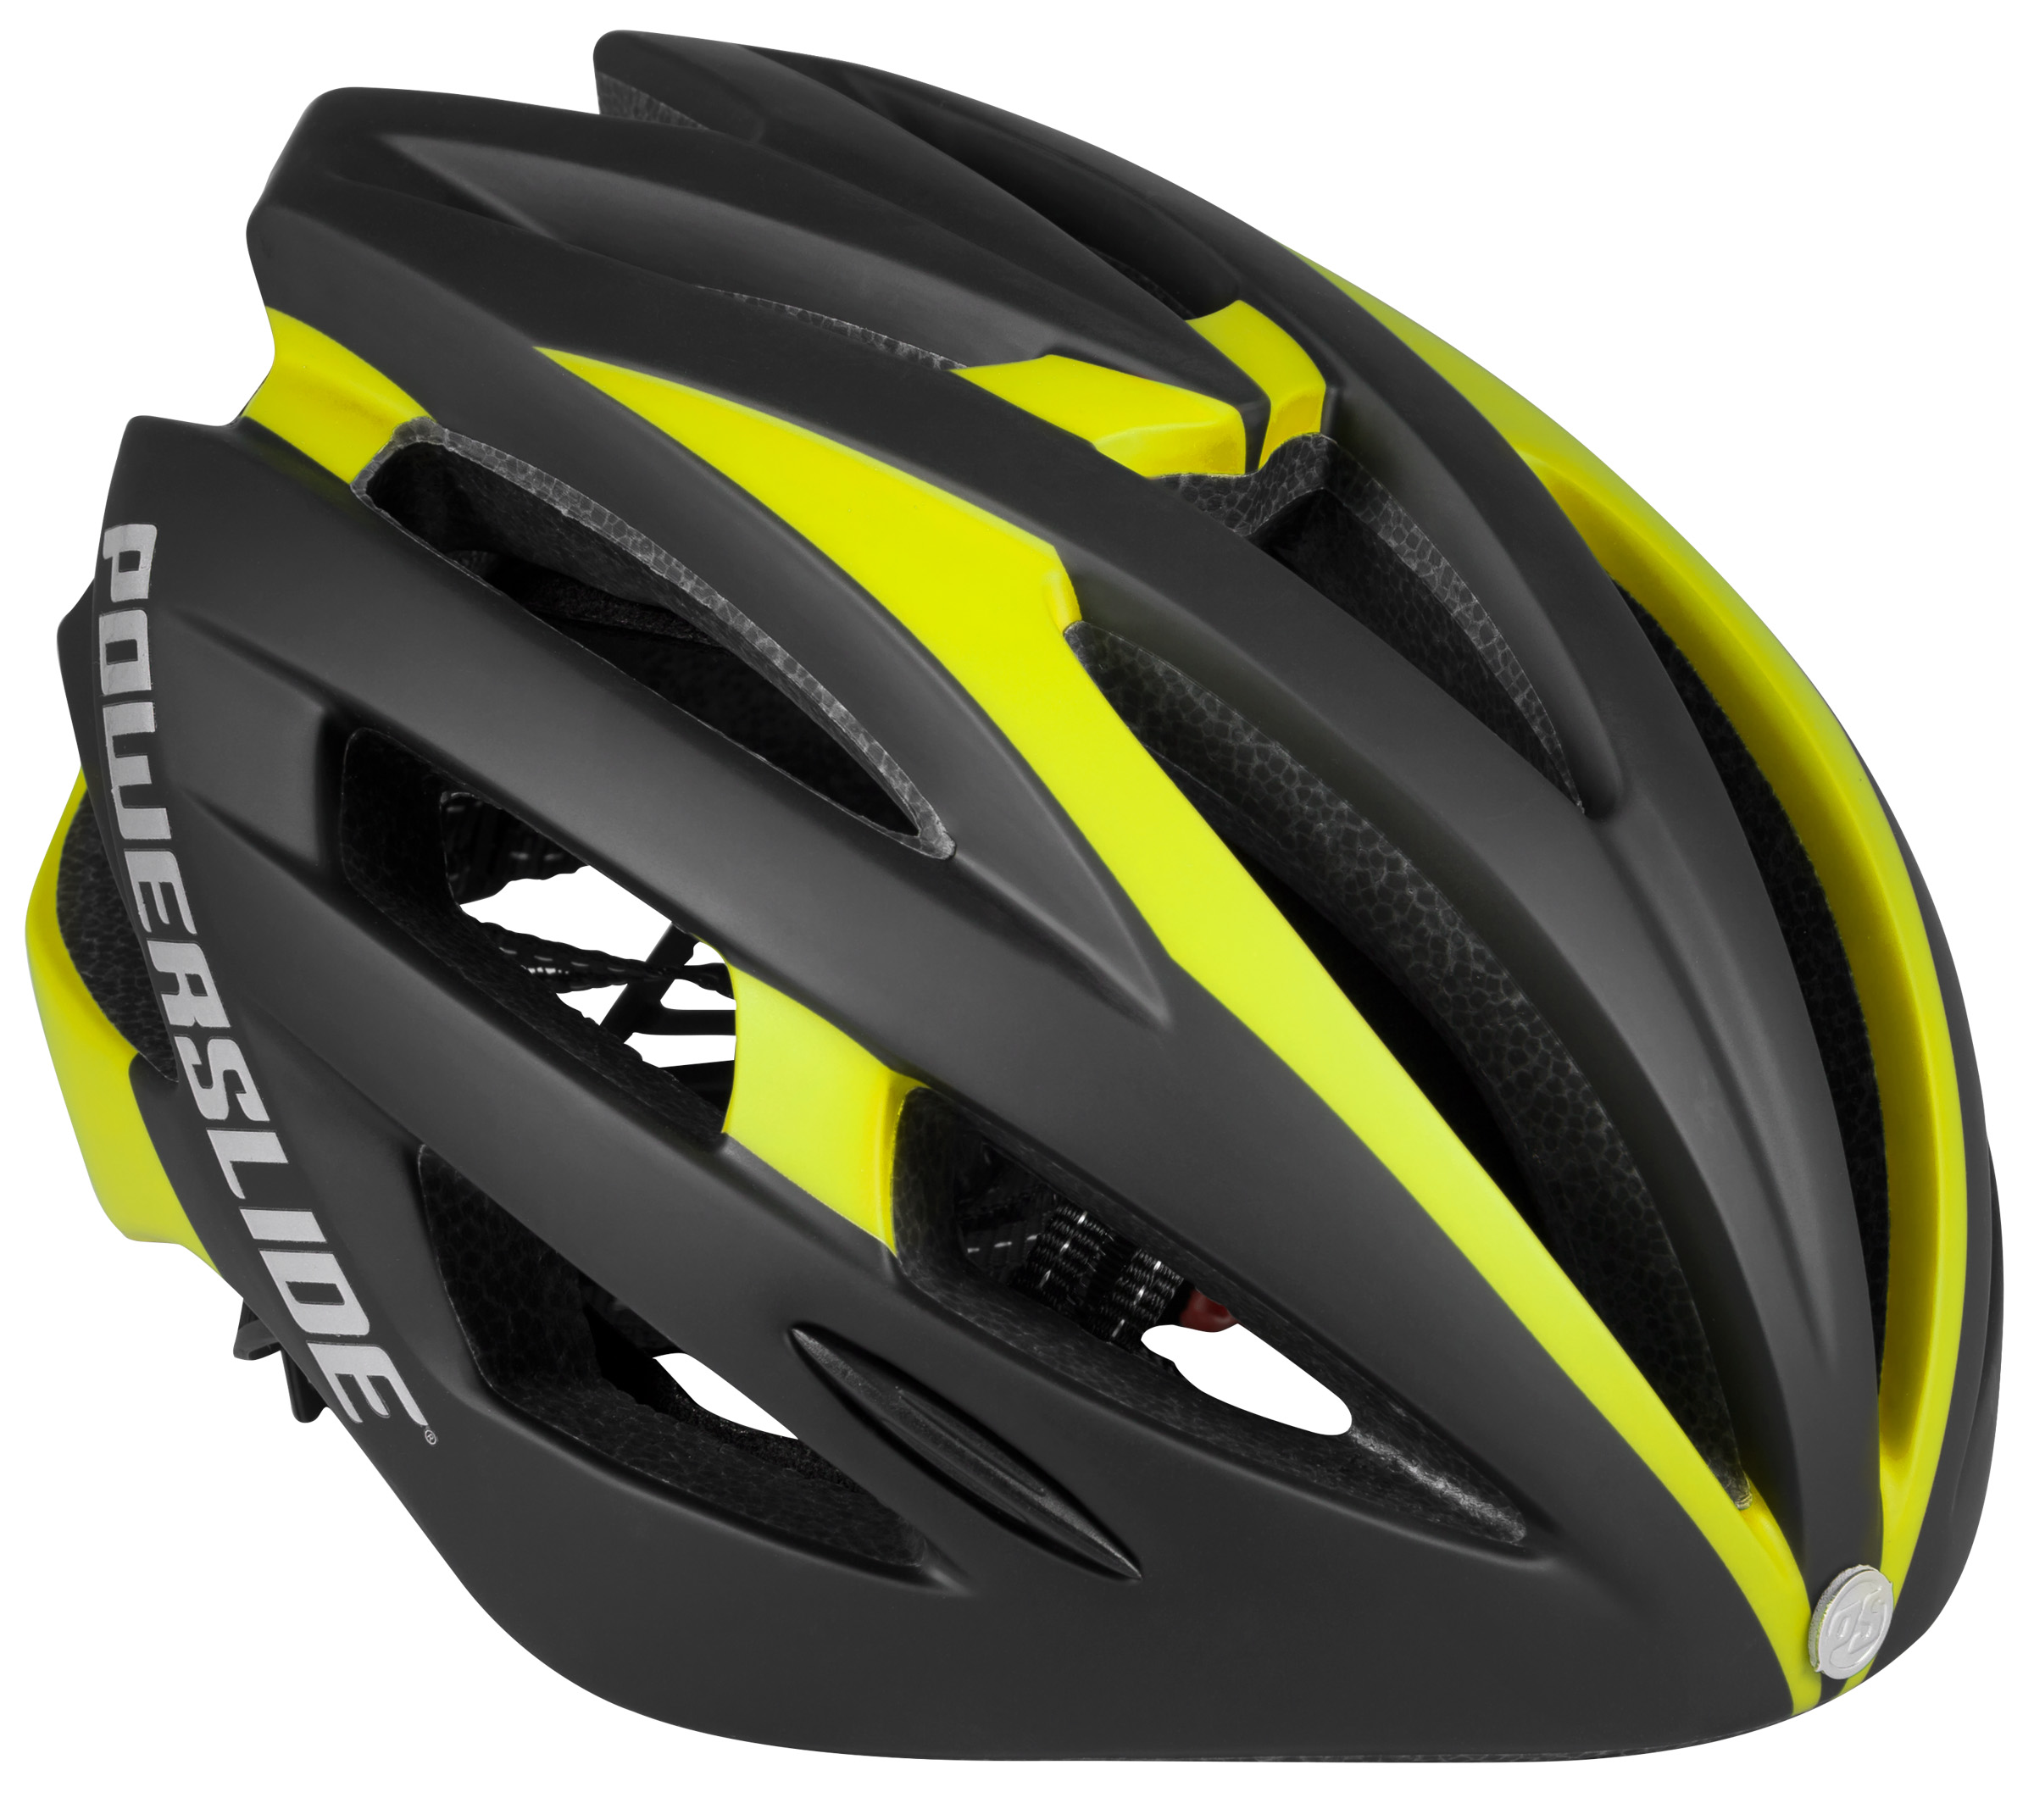 Helma Powerslide Race Attack yellow - 50-54cm